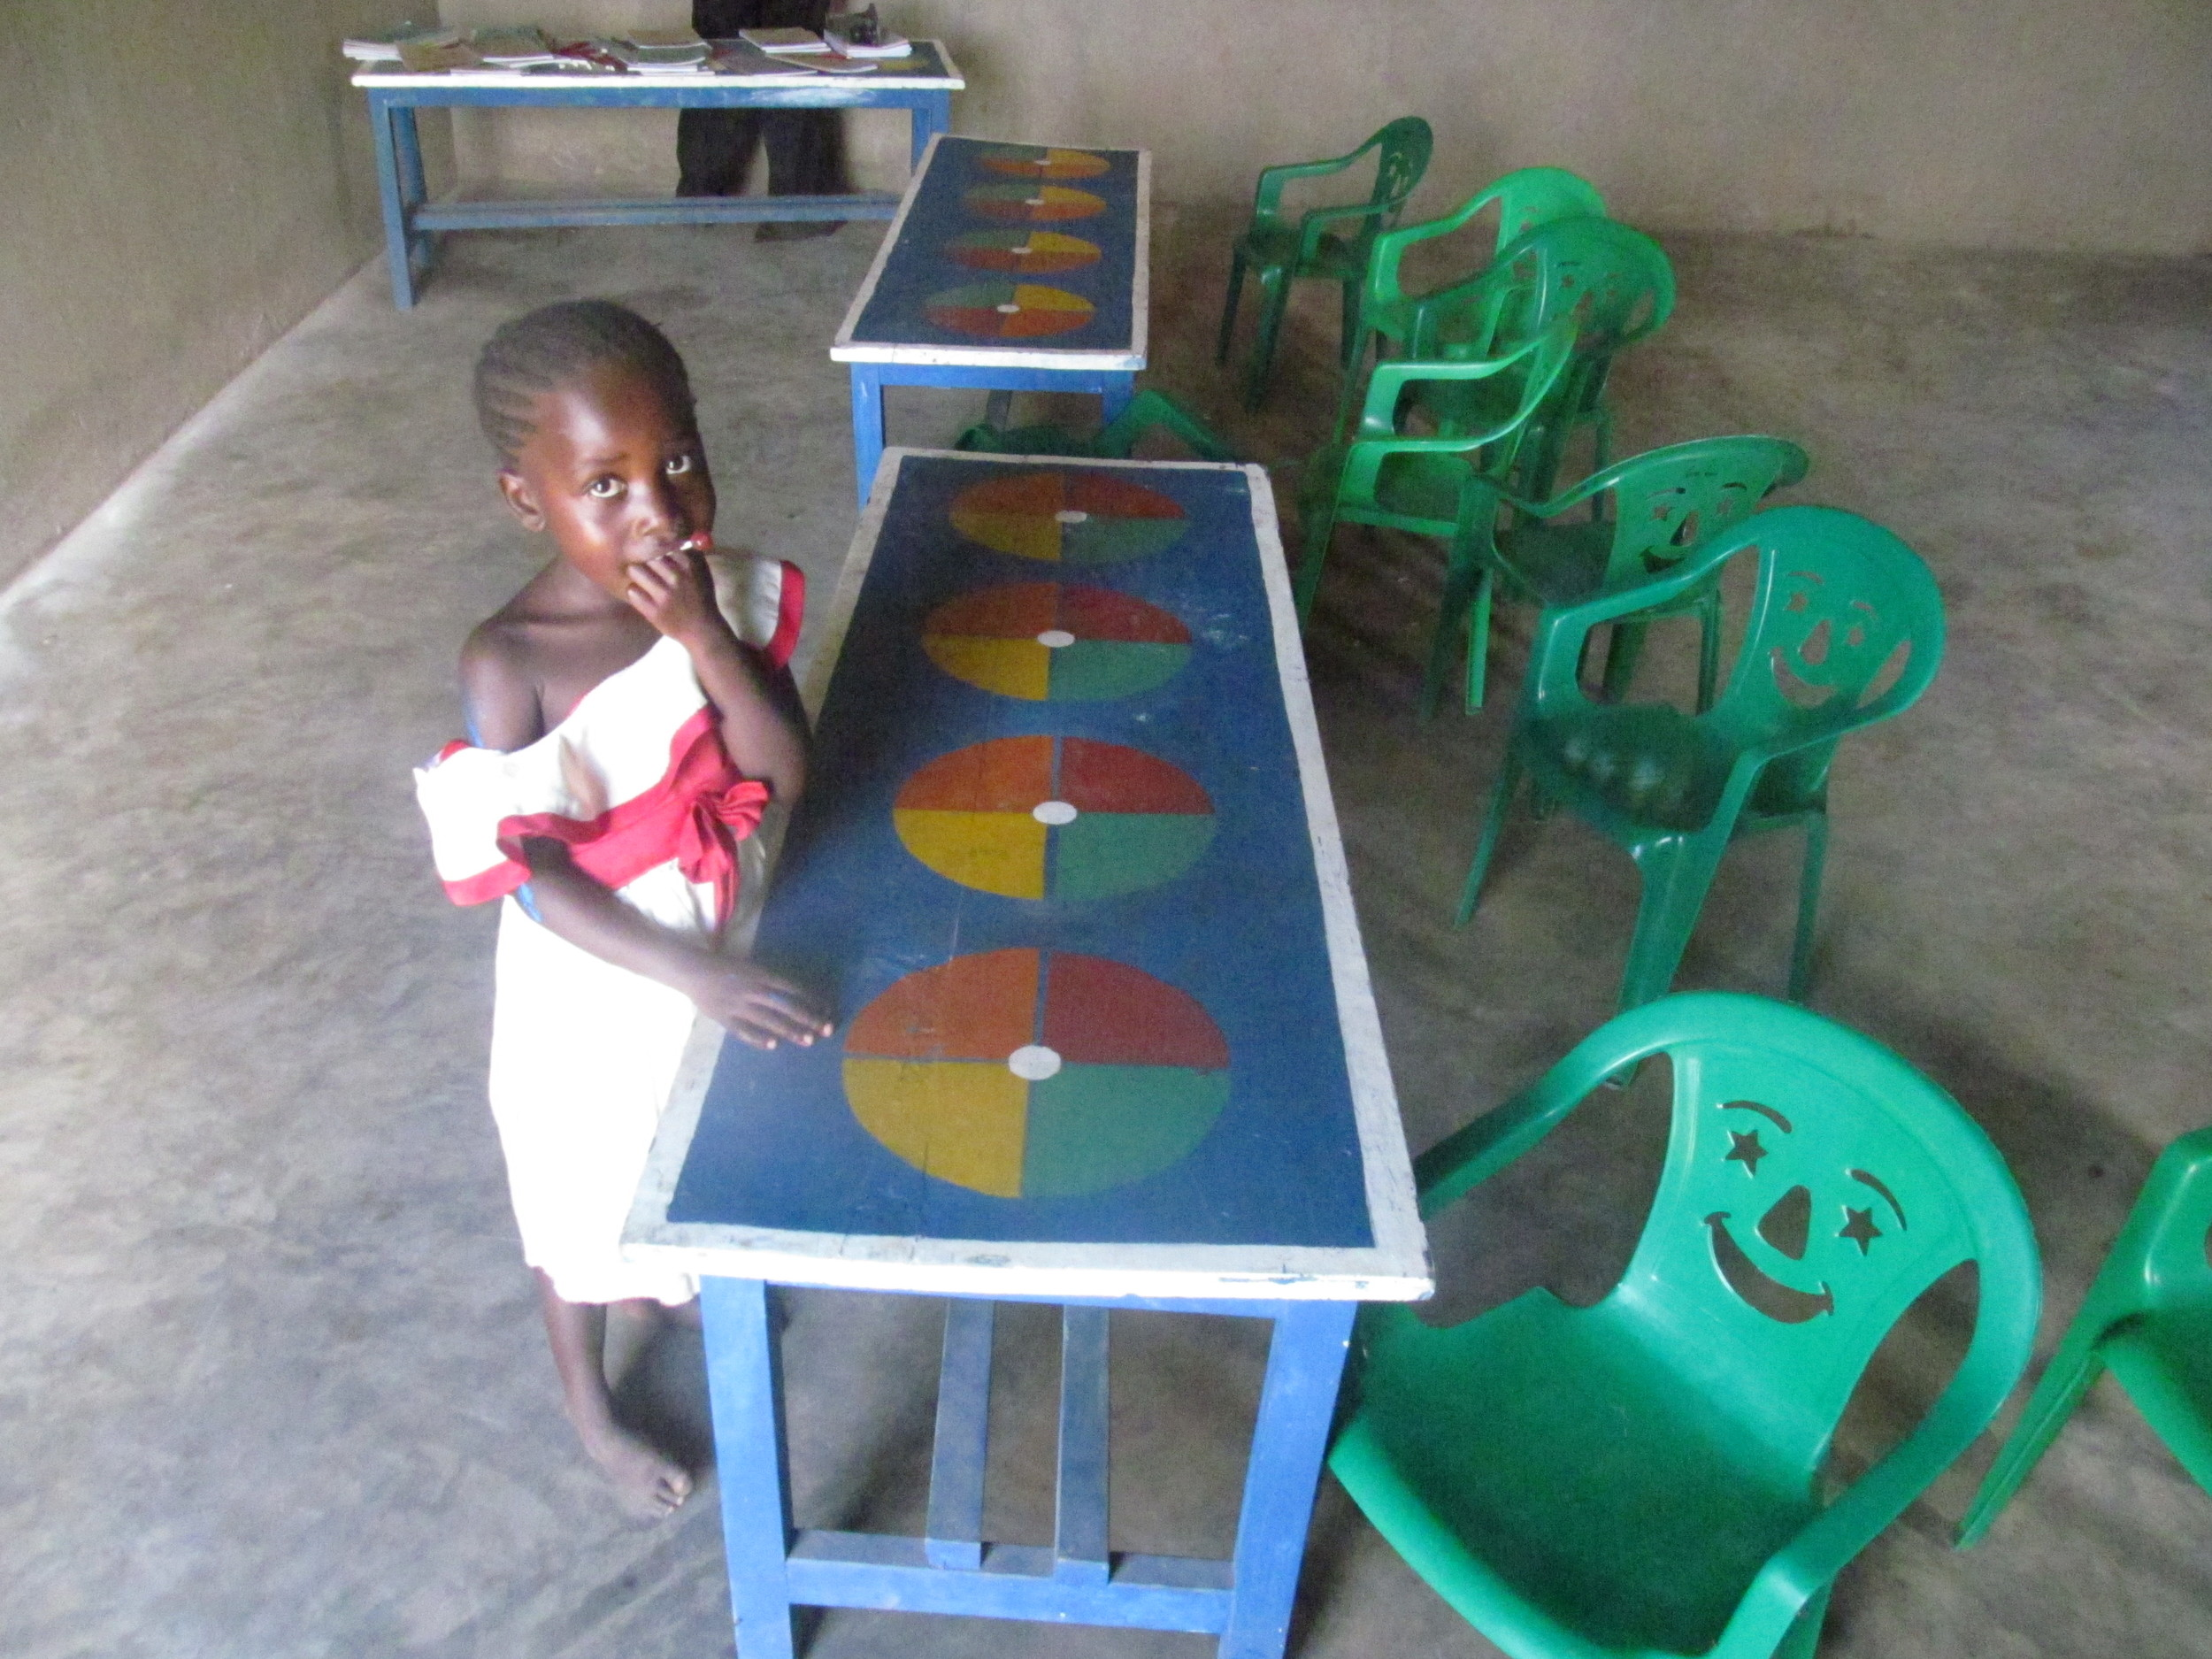 Photo op for this little one in her new classroom, just love the happy face chairs!